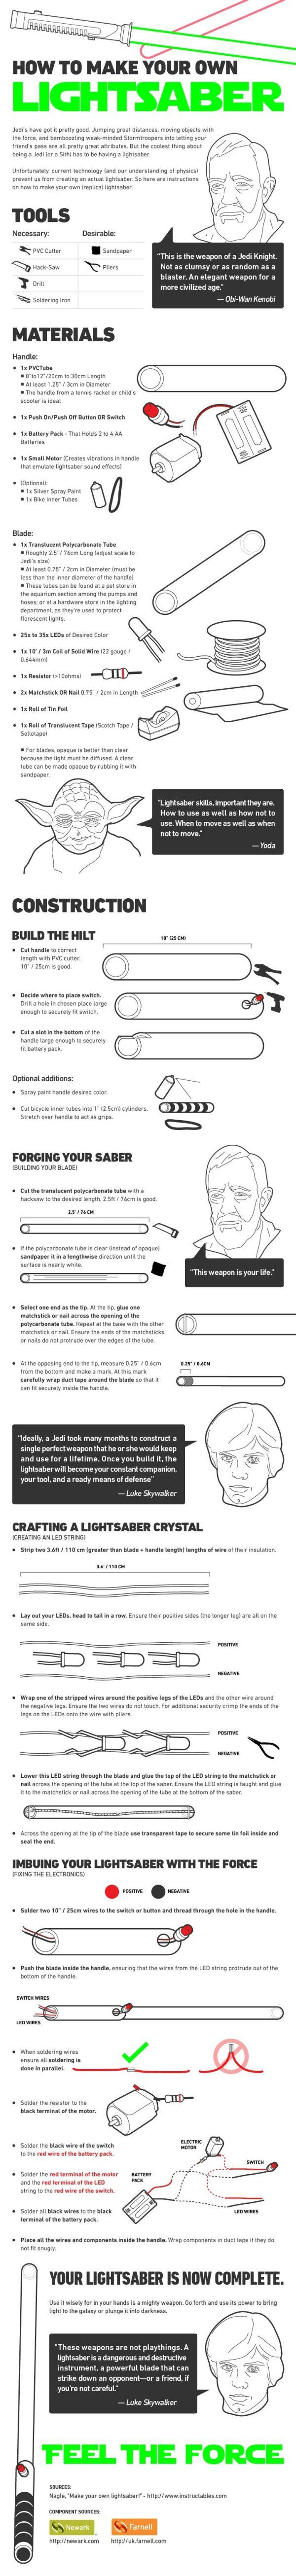 How to make your own lightsaber.